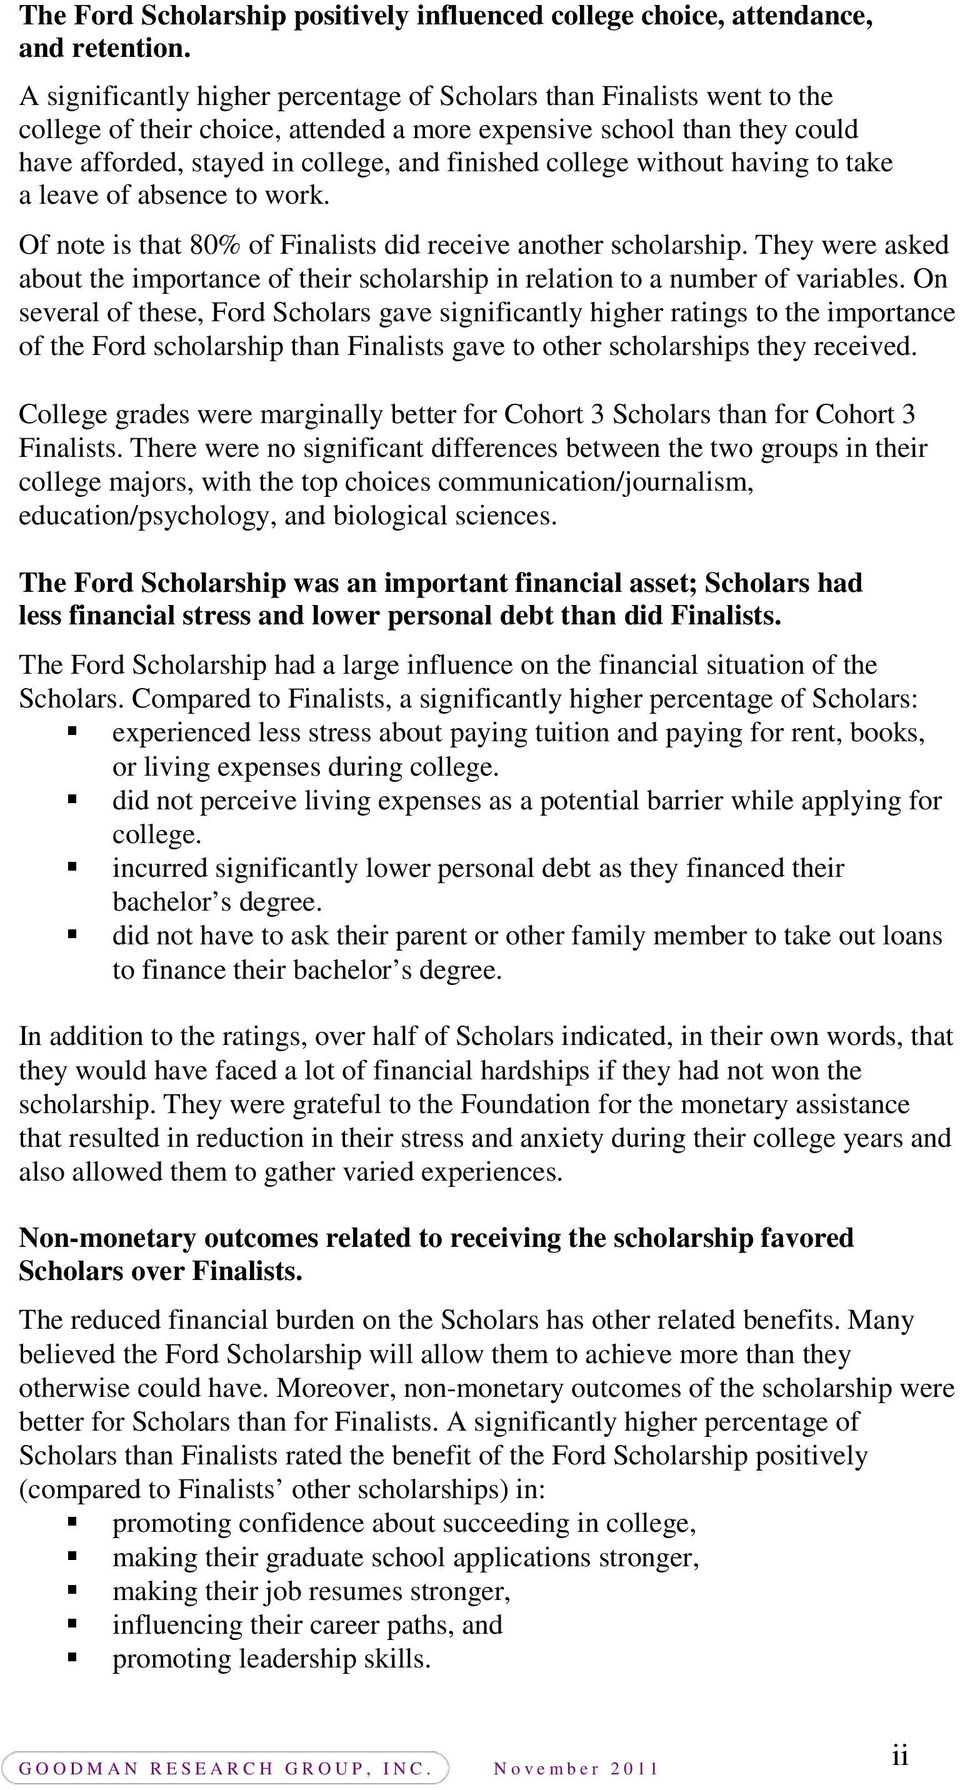 college without having to take a leave of absence to work. Of note is that 80% of Finalists did receive another scholarship.